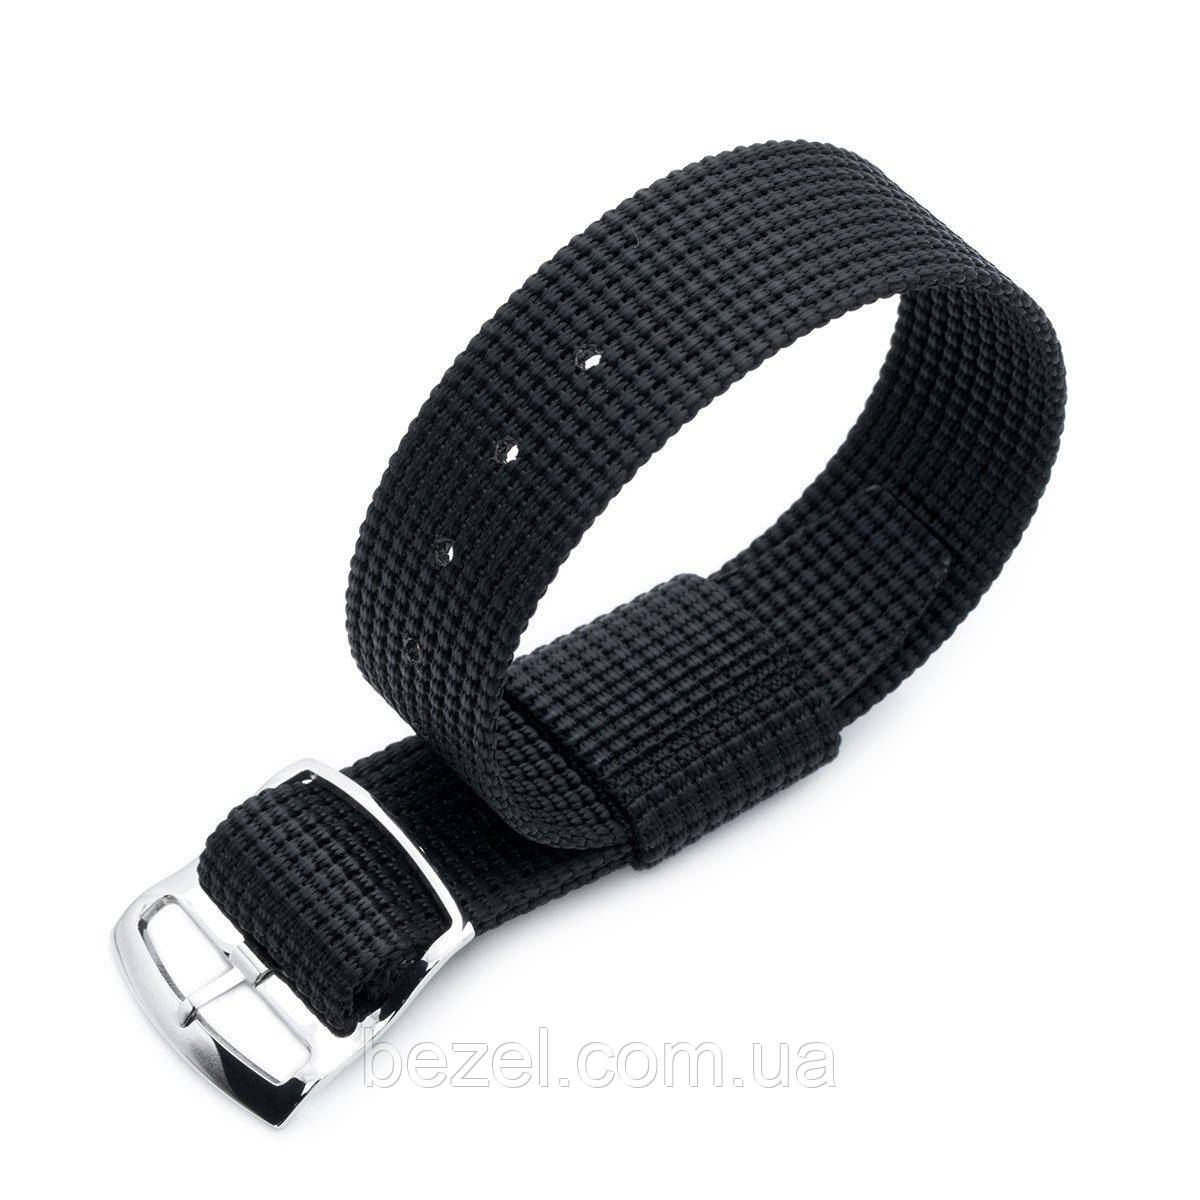 20mm or 22mm MiLTAT RAF N7 3-D Woven Nylon Nato Watch Strap, Matte Black, Polished Ladder Lock Slider Buckle